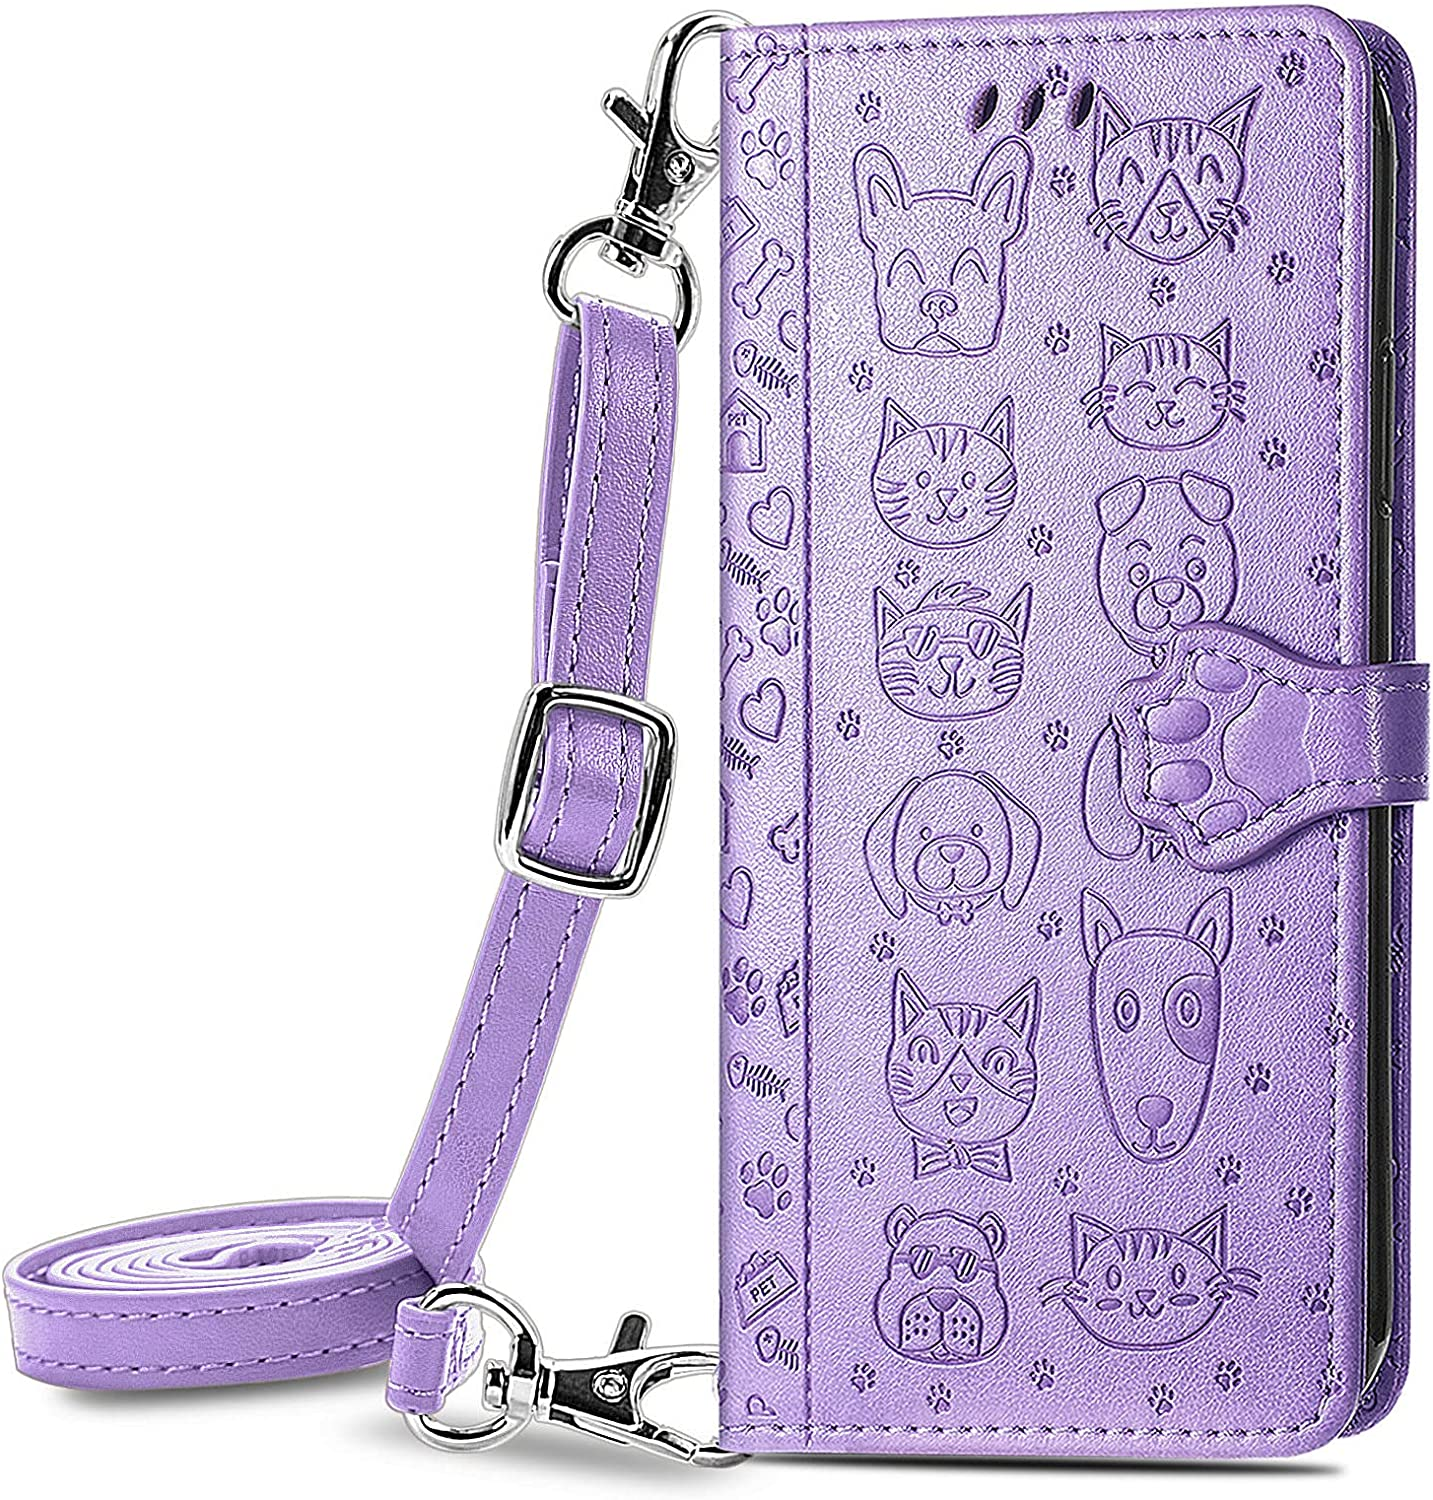 DAMONDY Case for ZTE Zmax 10,Leather Wallet Case with Lanyard Detachable Strap Designs for Girls Women,with Kickstand Card Slots Cover,Protective Phone Case for ZTE Zmax 10 -Purple